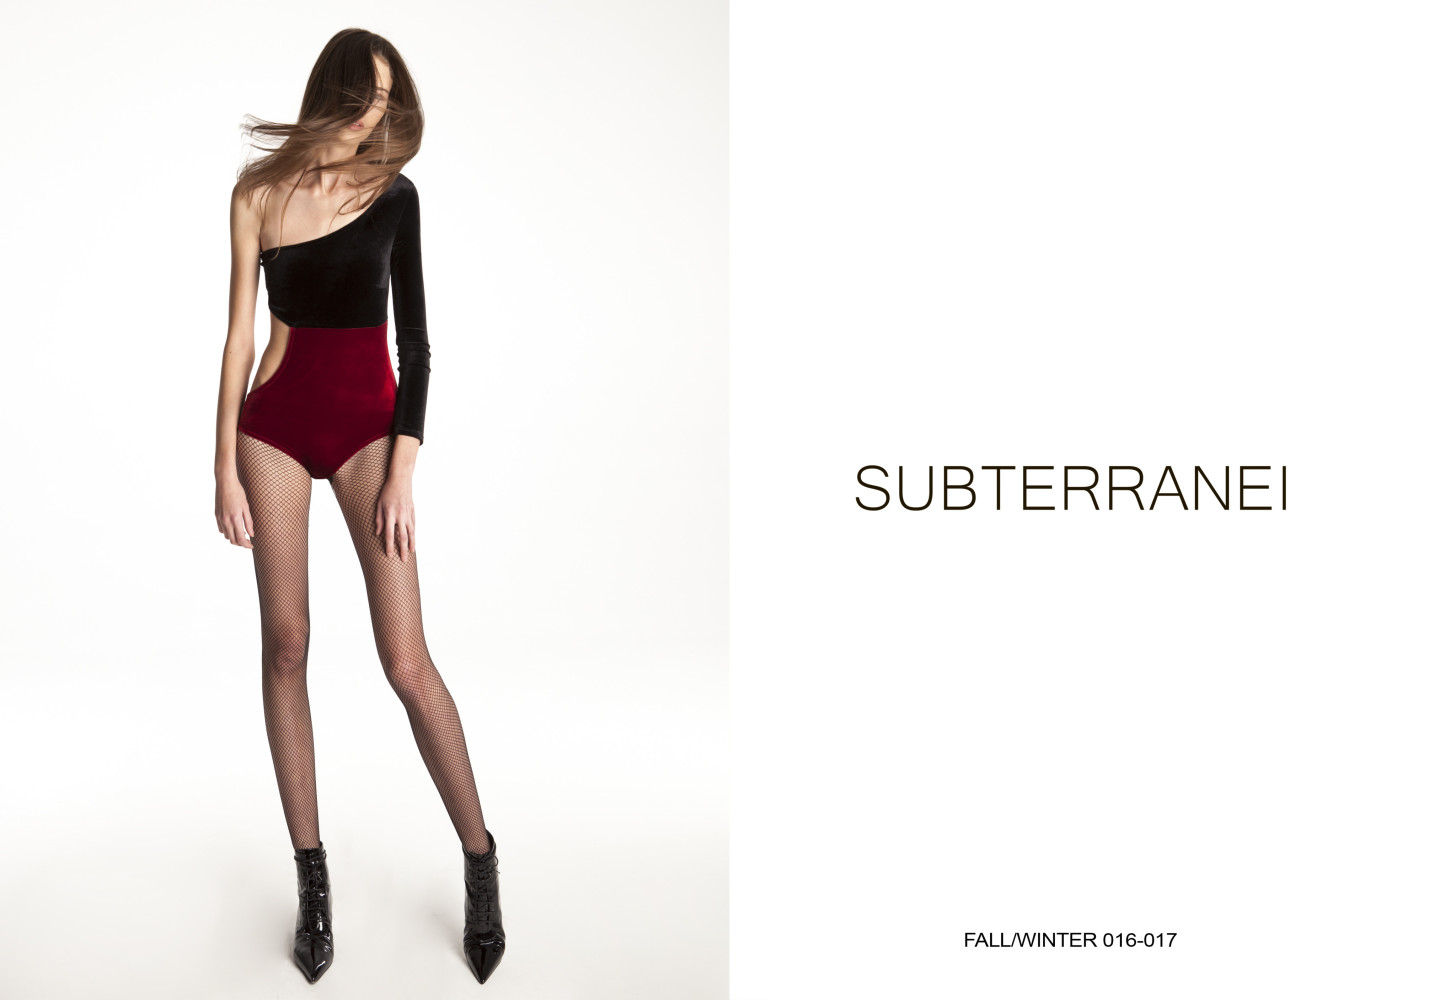 Siah for SUBTERRANEI FW 16/17